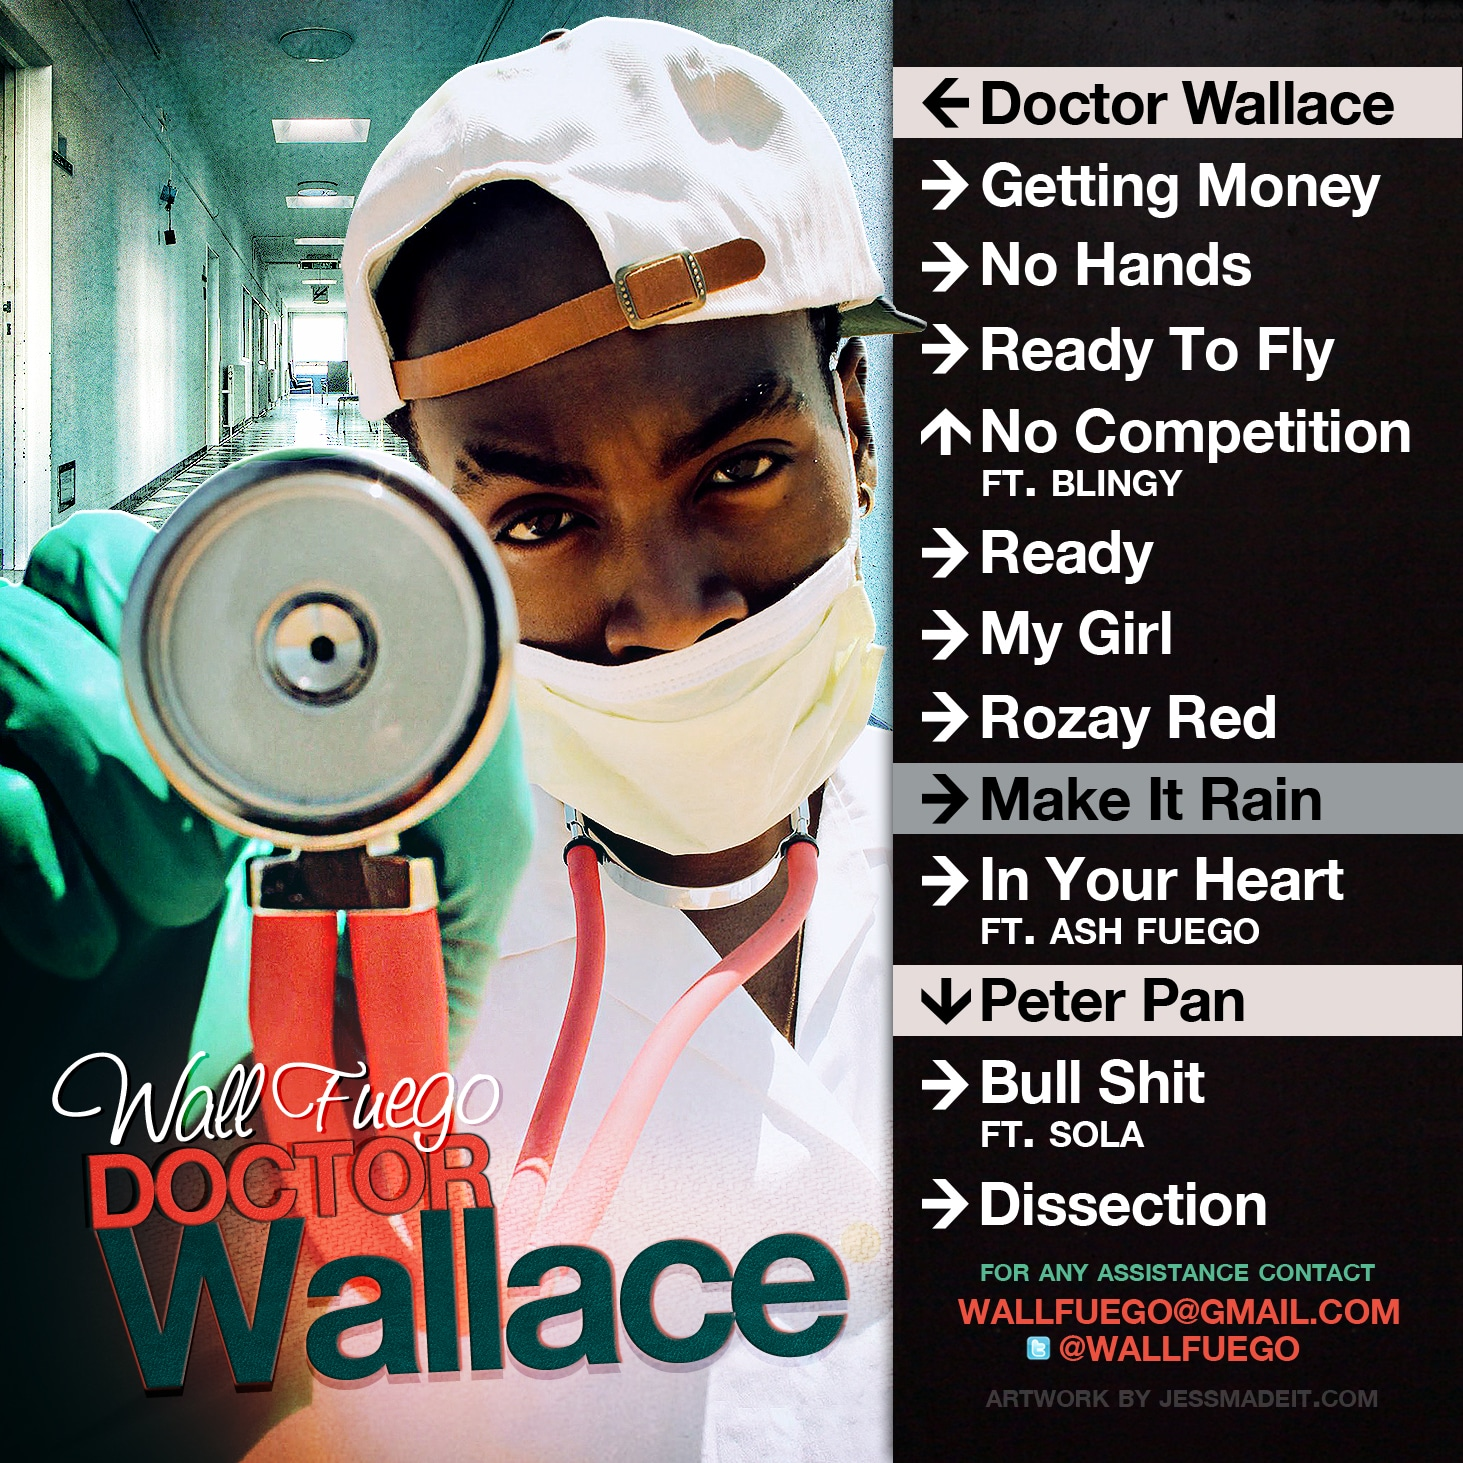 Doctor Wallace